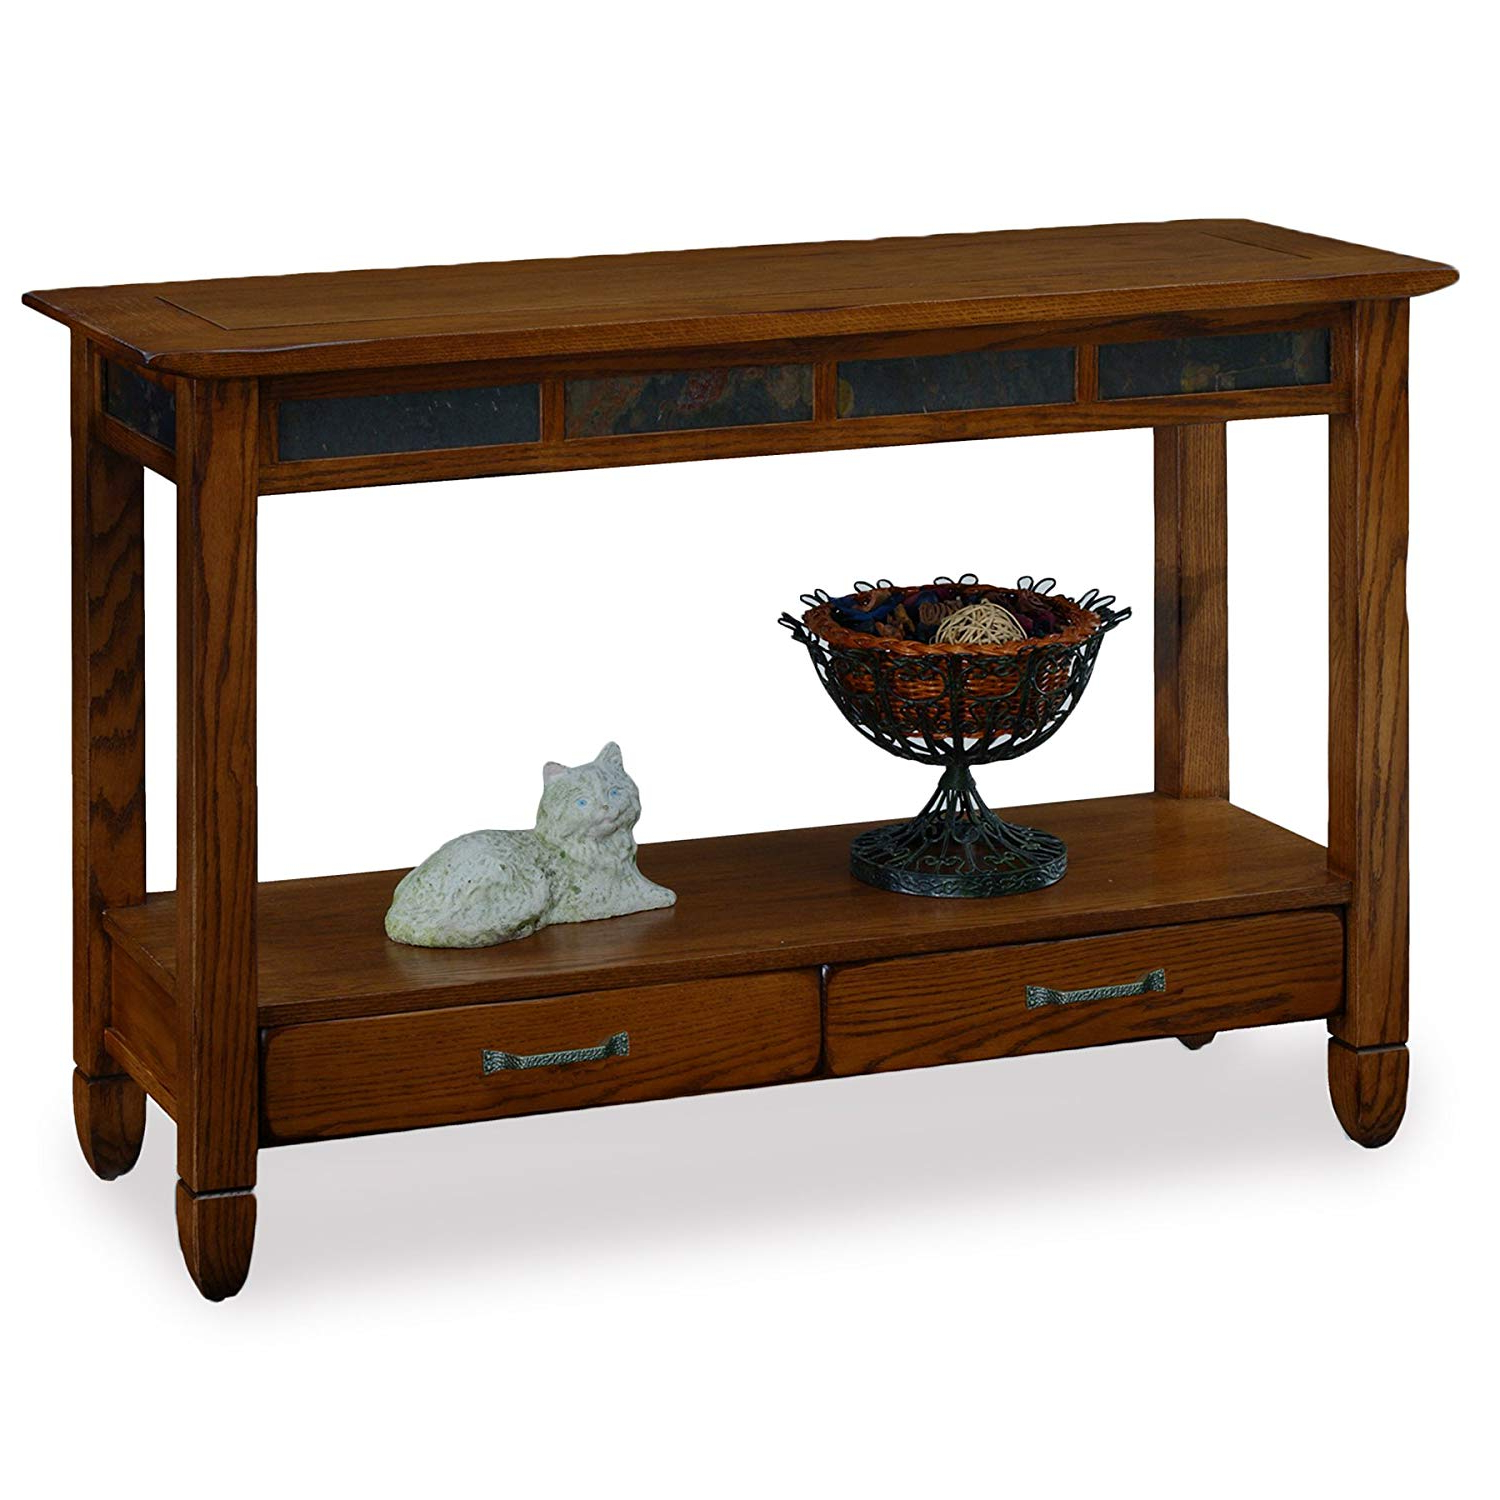 Famous Parsons Walnut Top & Brass Base 48x16 Console Tables Pertaining To Amazon: Slatestone Oak Storage Console Table – Rustic Oak Finish (View 14 of 20)